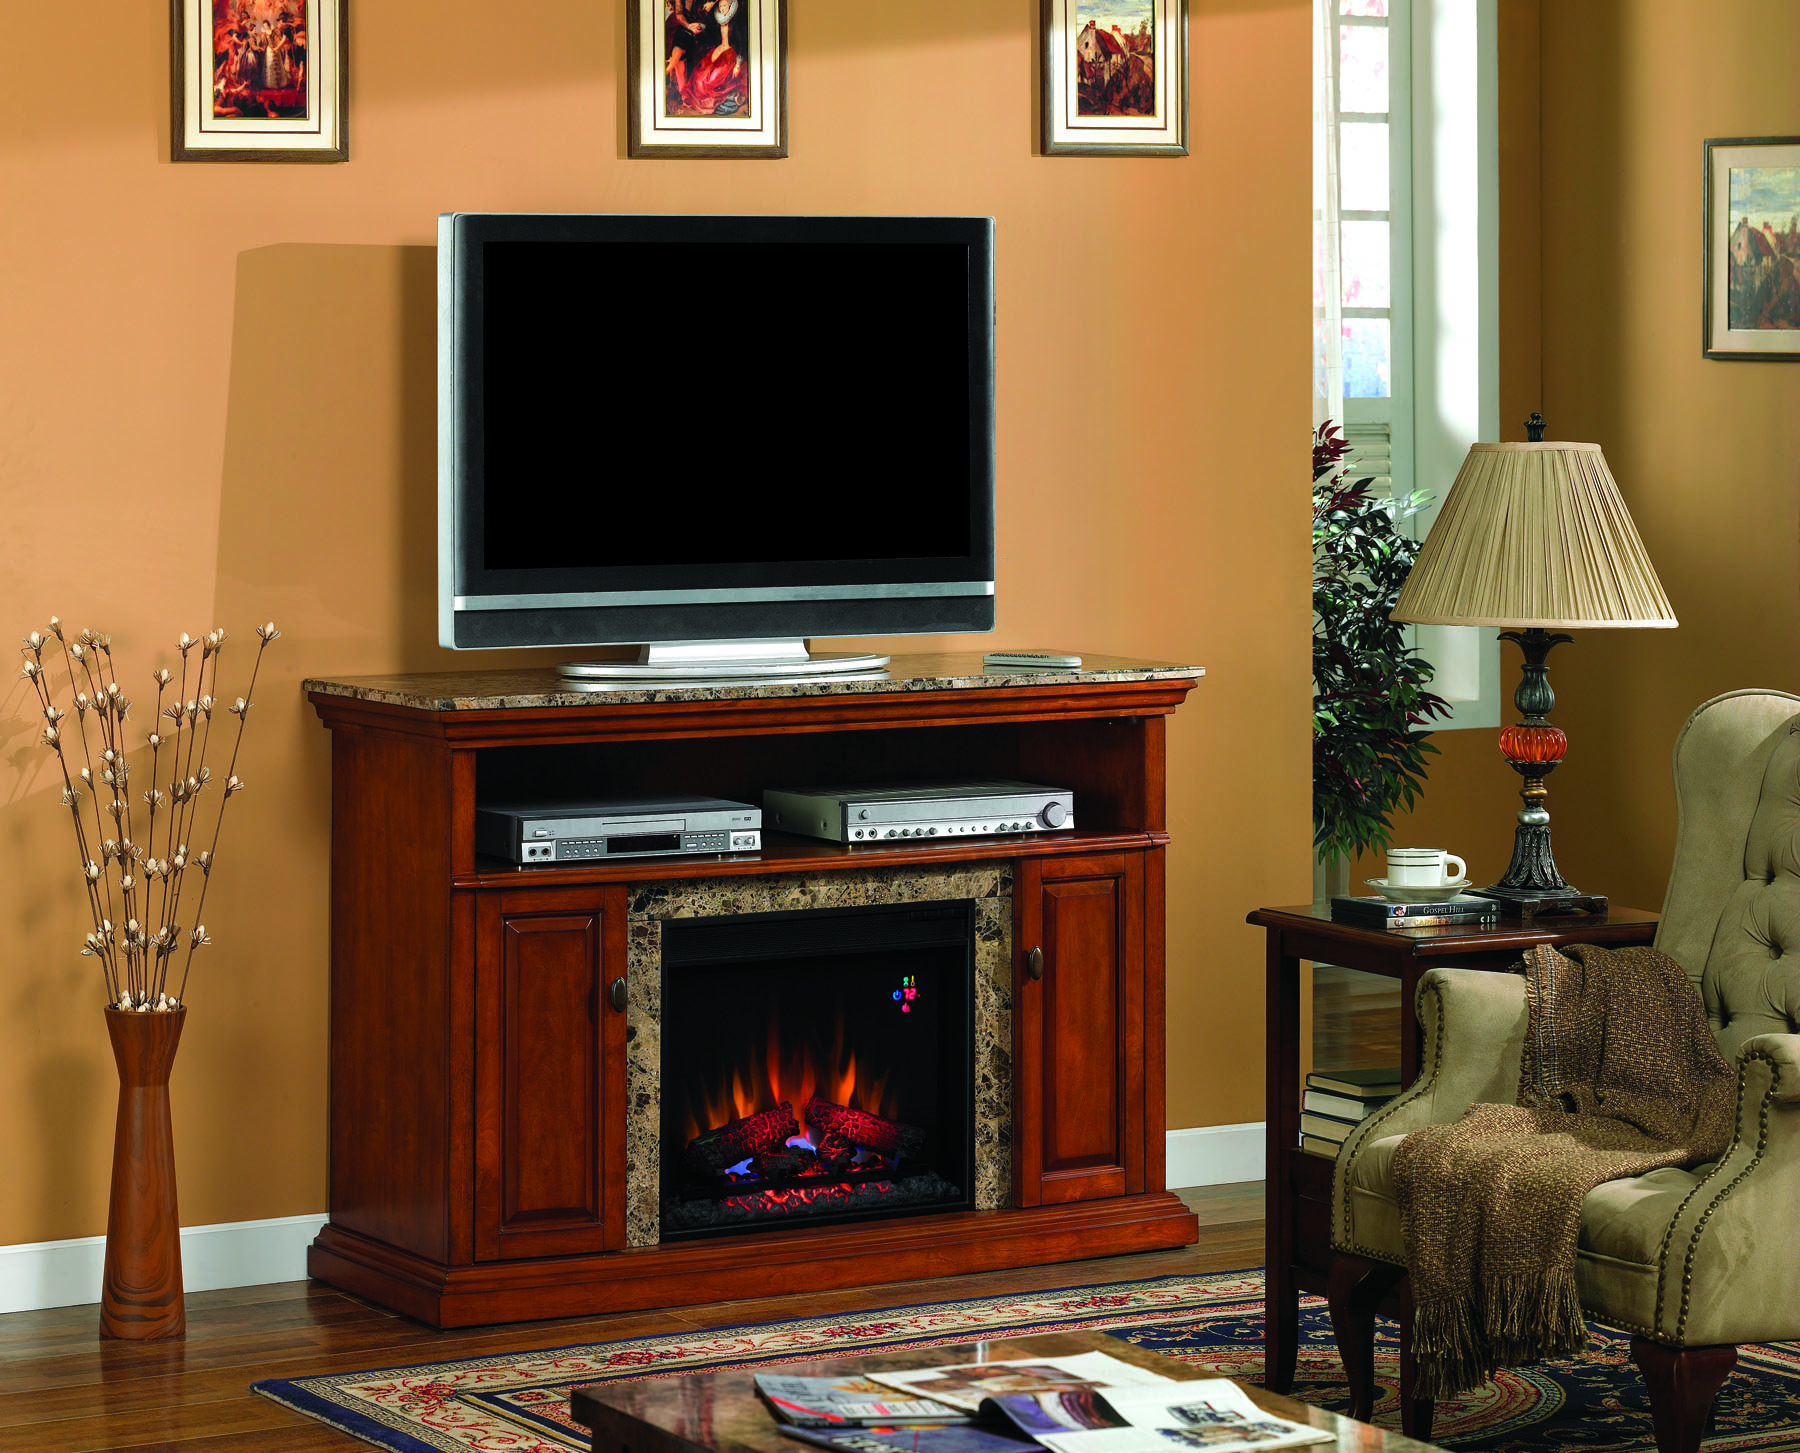 Ordinaire 56u0027u0027 Briteton Golden Honey Marble Entertainment Center Electric Fireplace